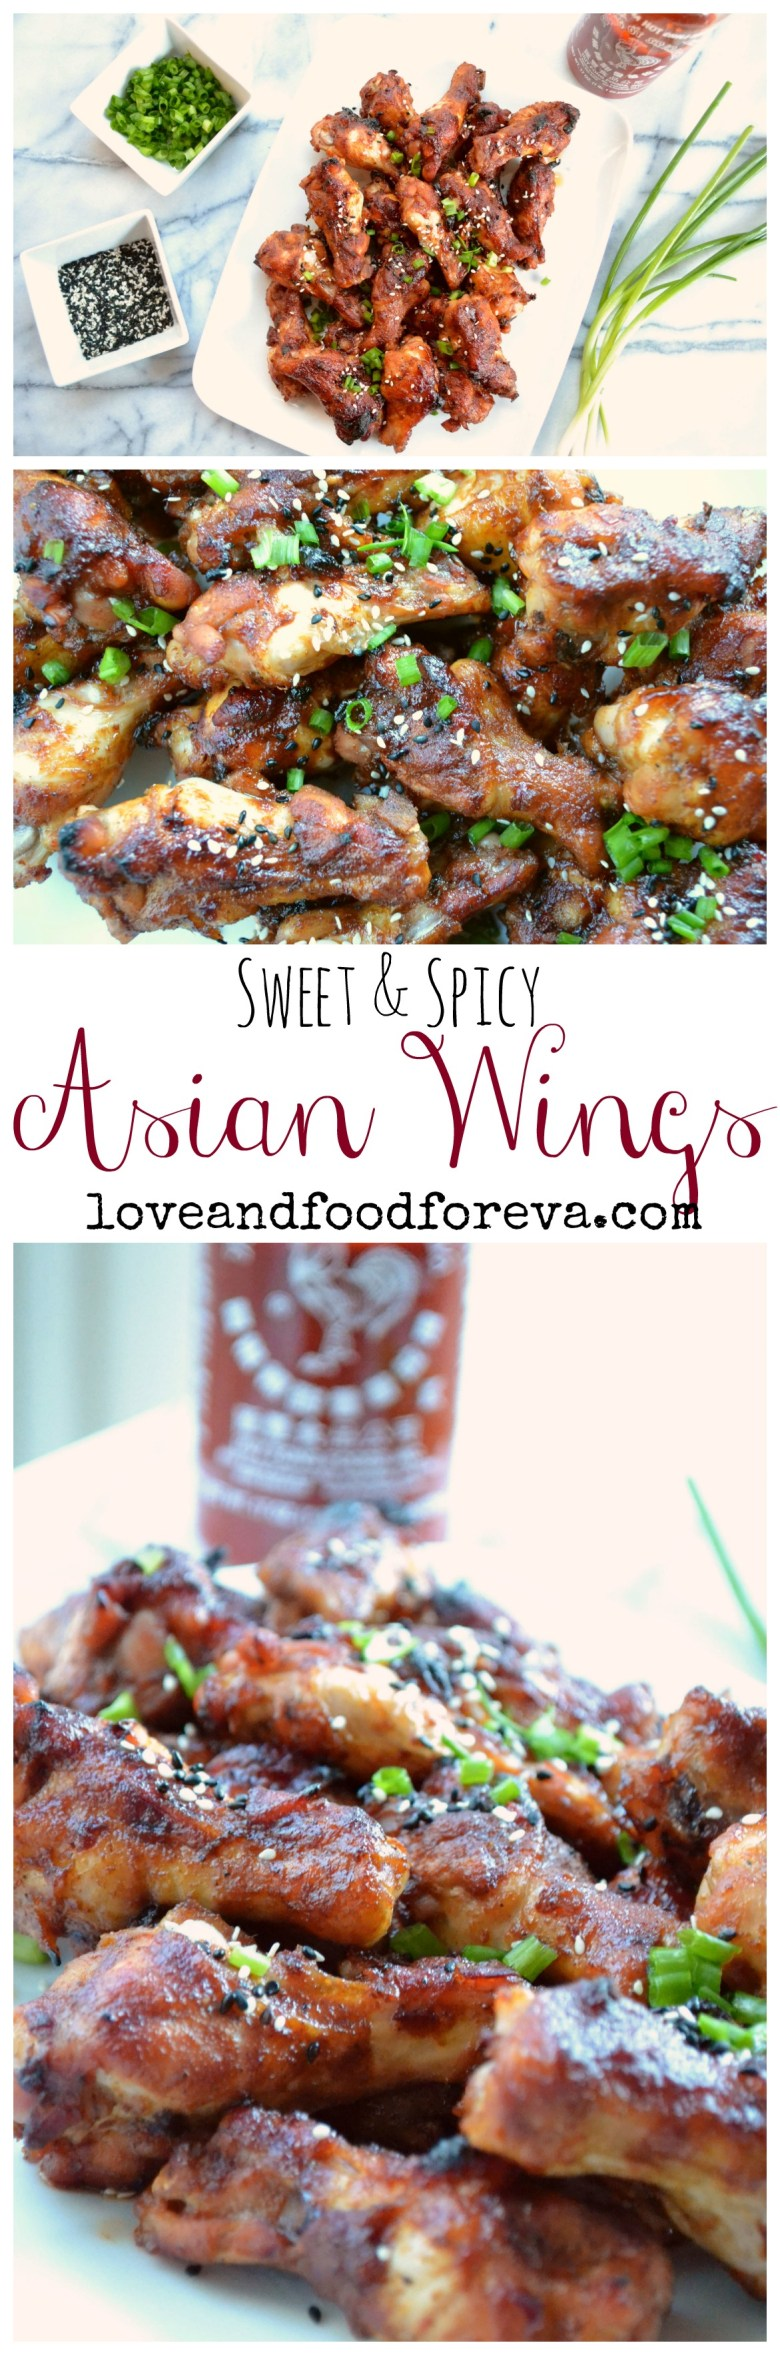 Sweet & spicy Asian Wings - perfect for game day!